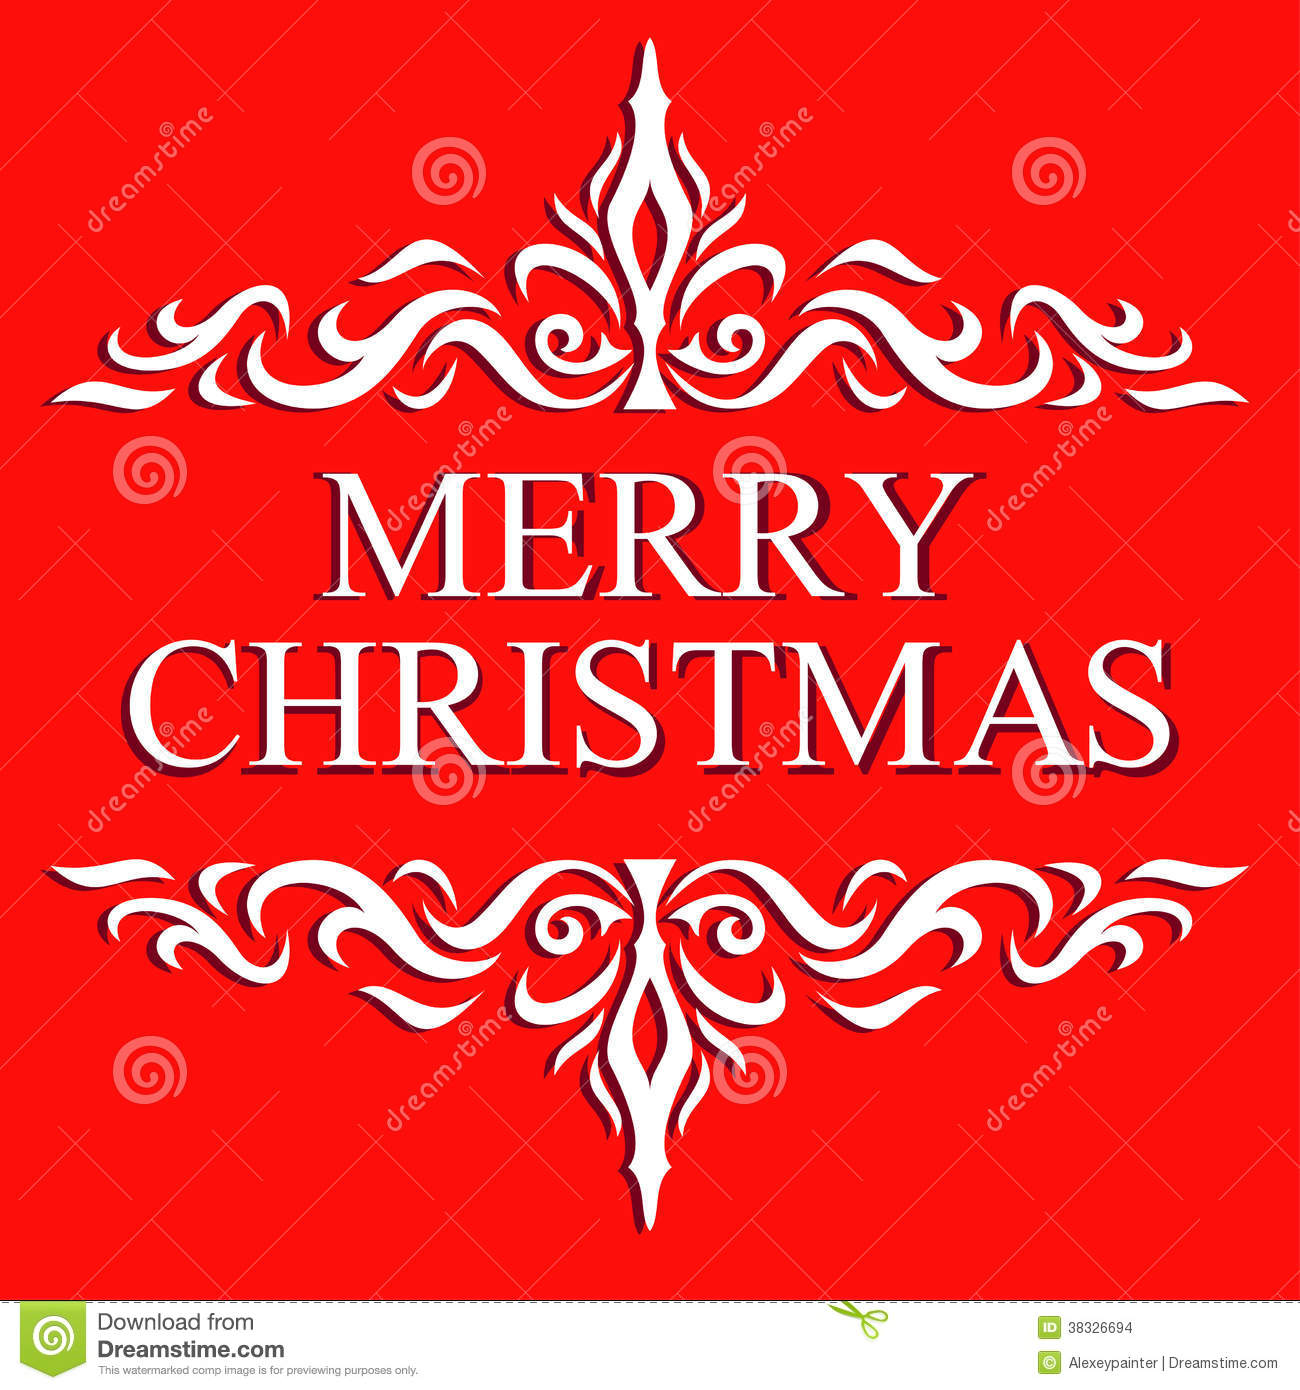 Christmas greeting card merry christmas and happy new year 2014 download christmas greeting card merry christmas and happy new year 2014 lettering illustration m4hsunfo